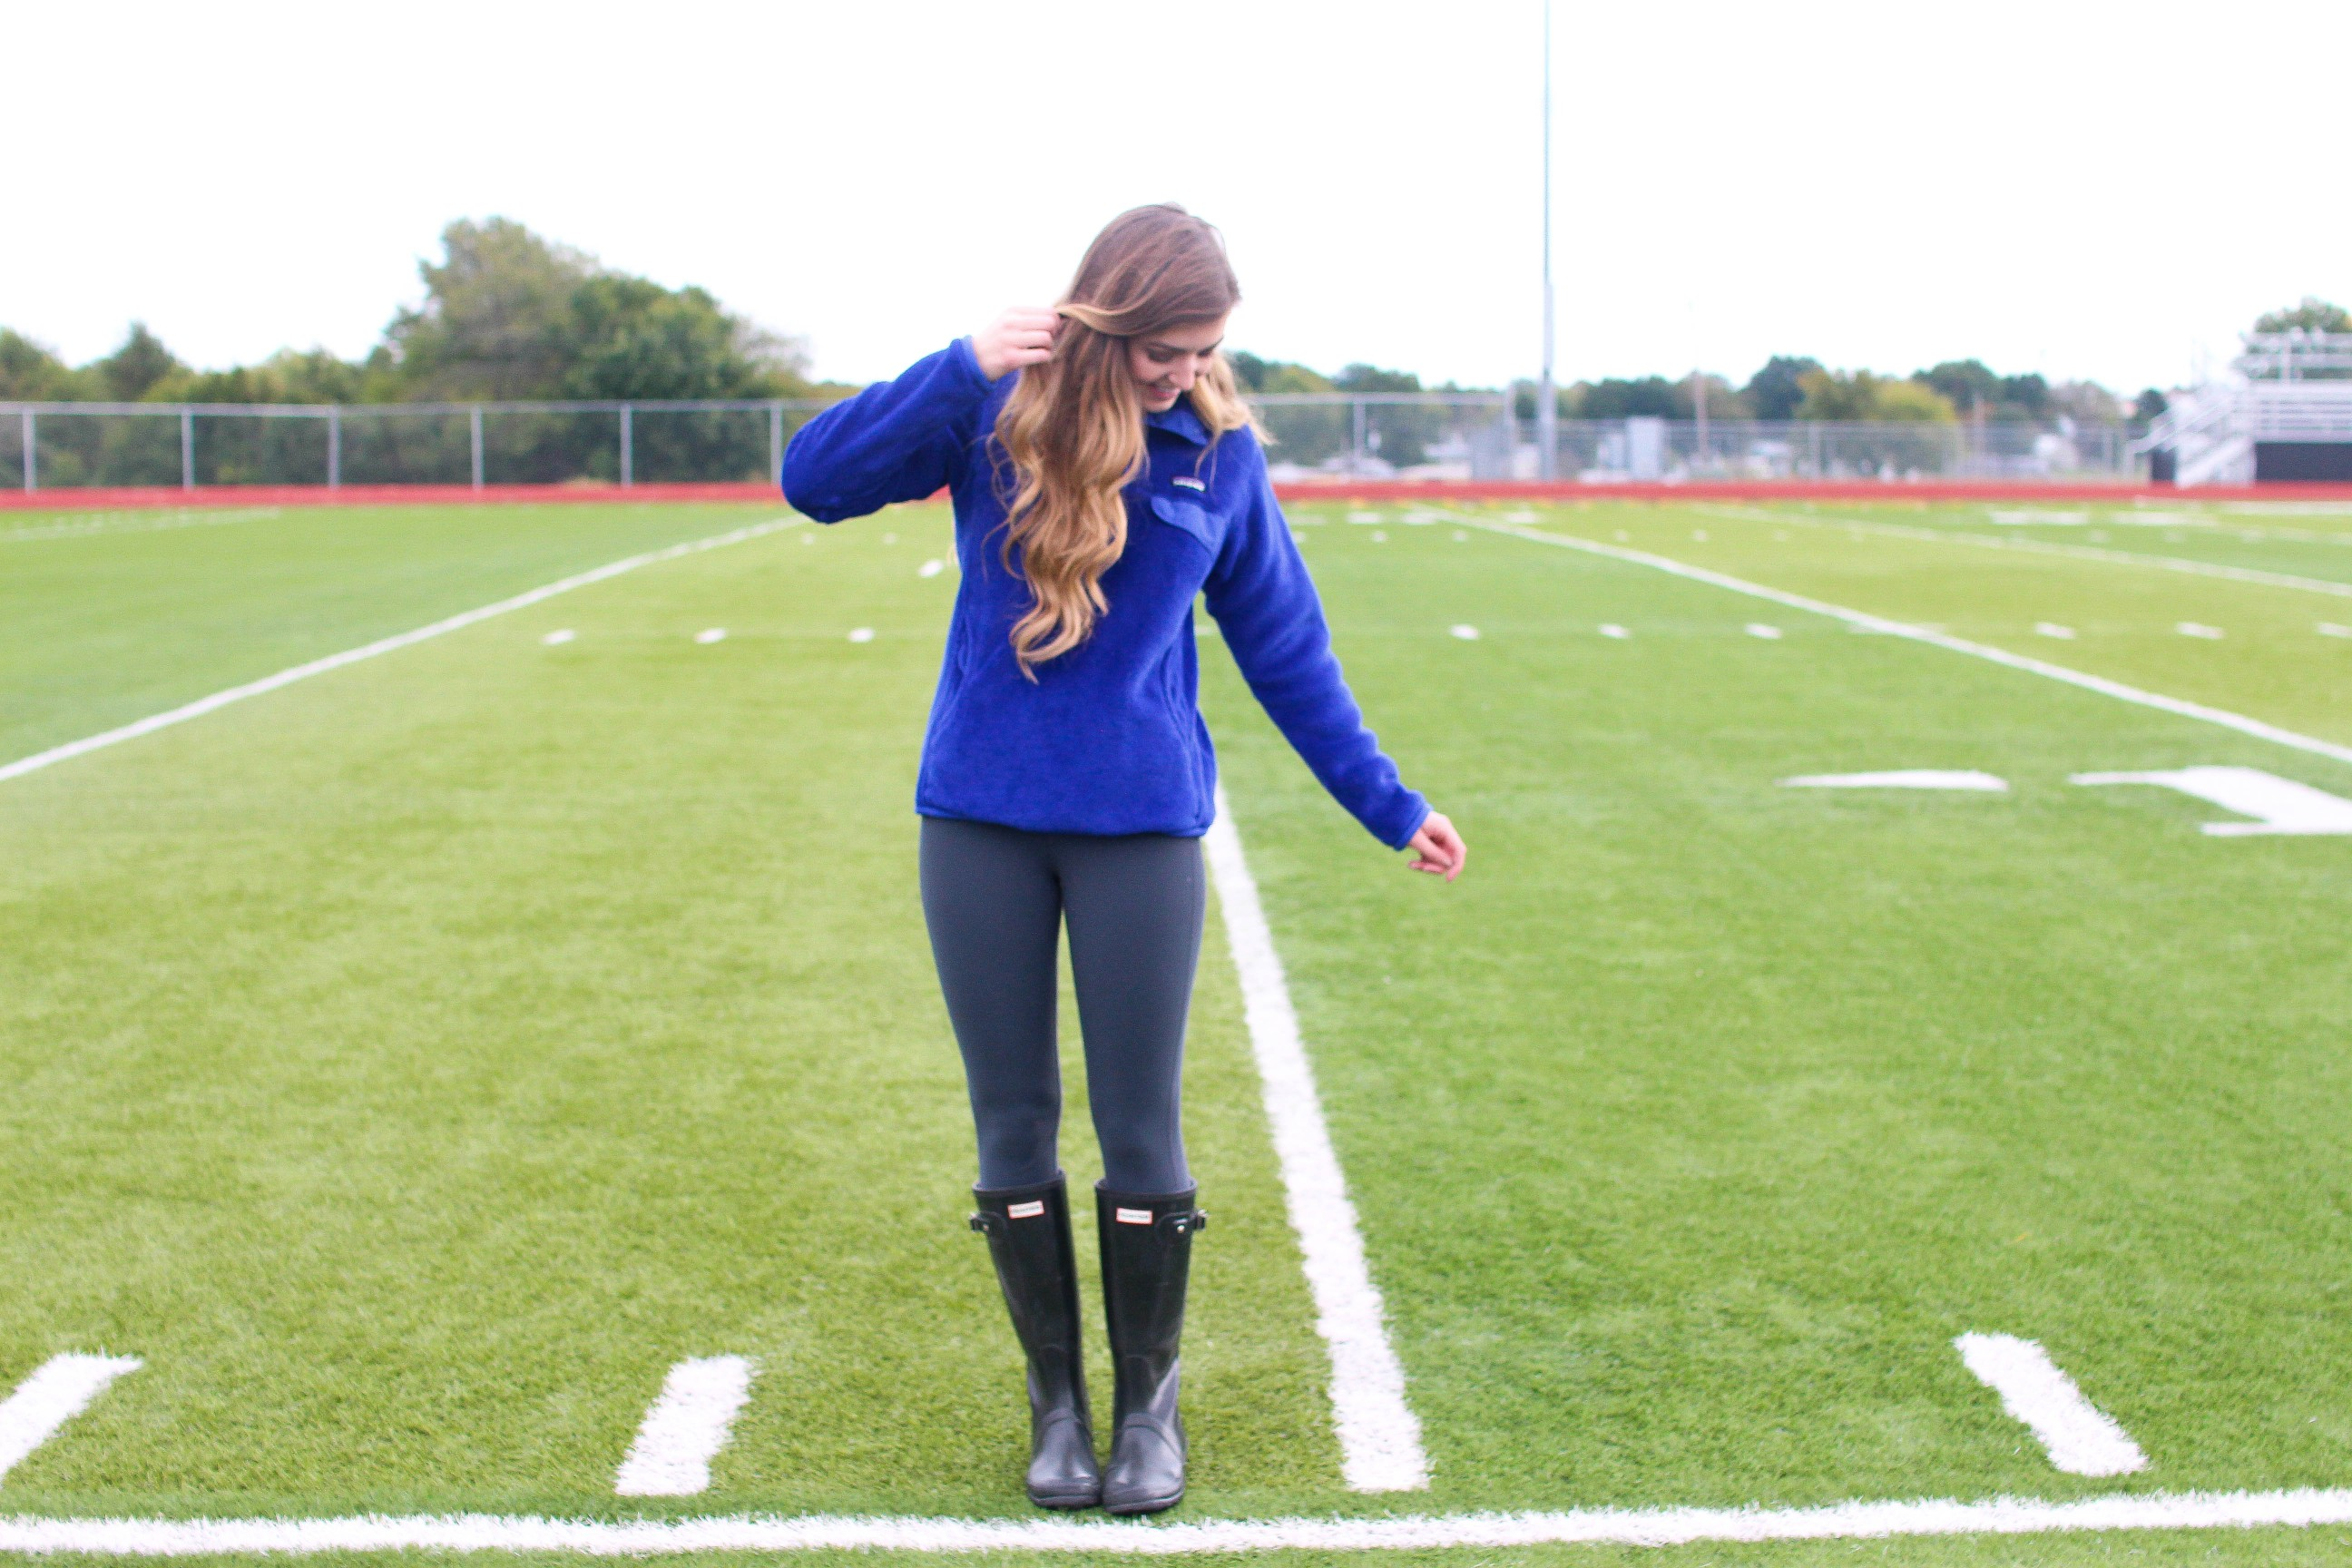 how to rock your school's colors | Game Day Look Book by daily dose of charm lauren lindmark dailydoseofcharm.com